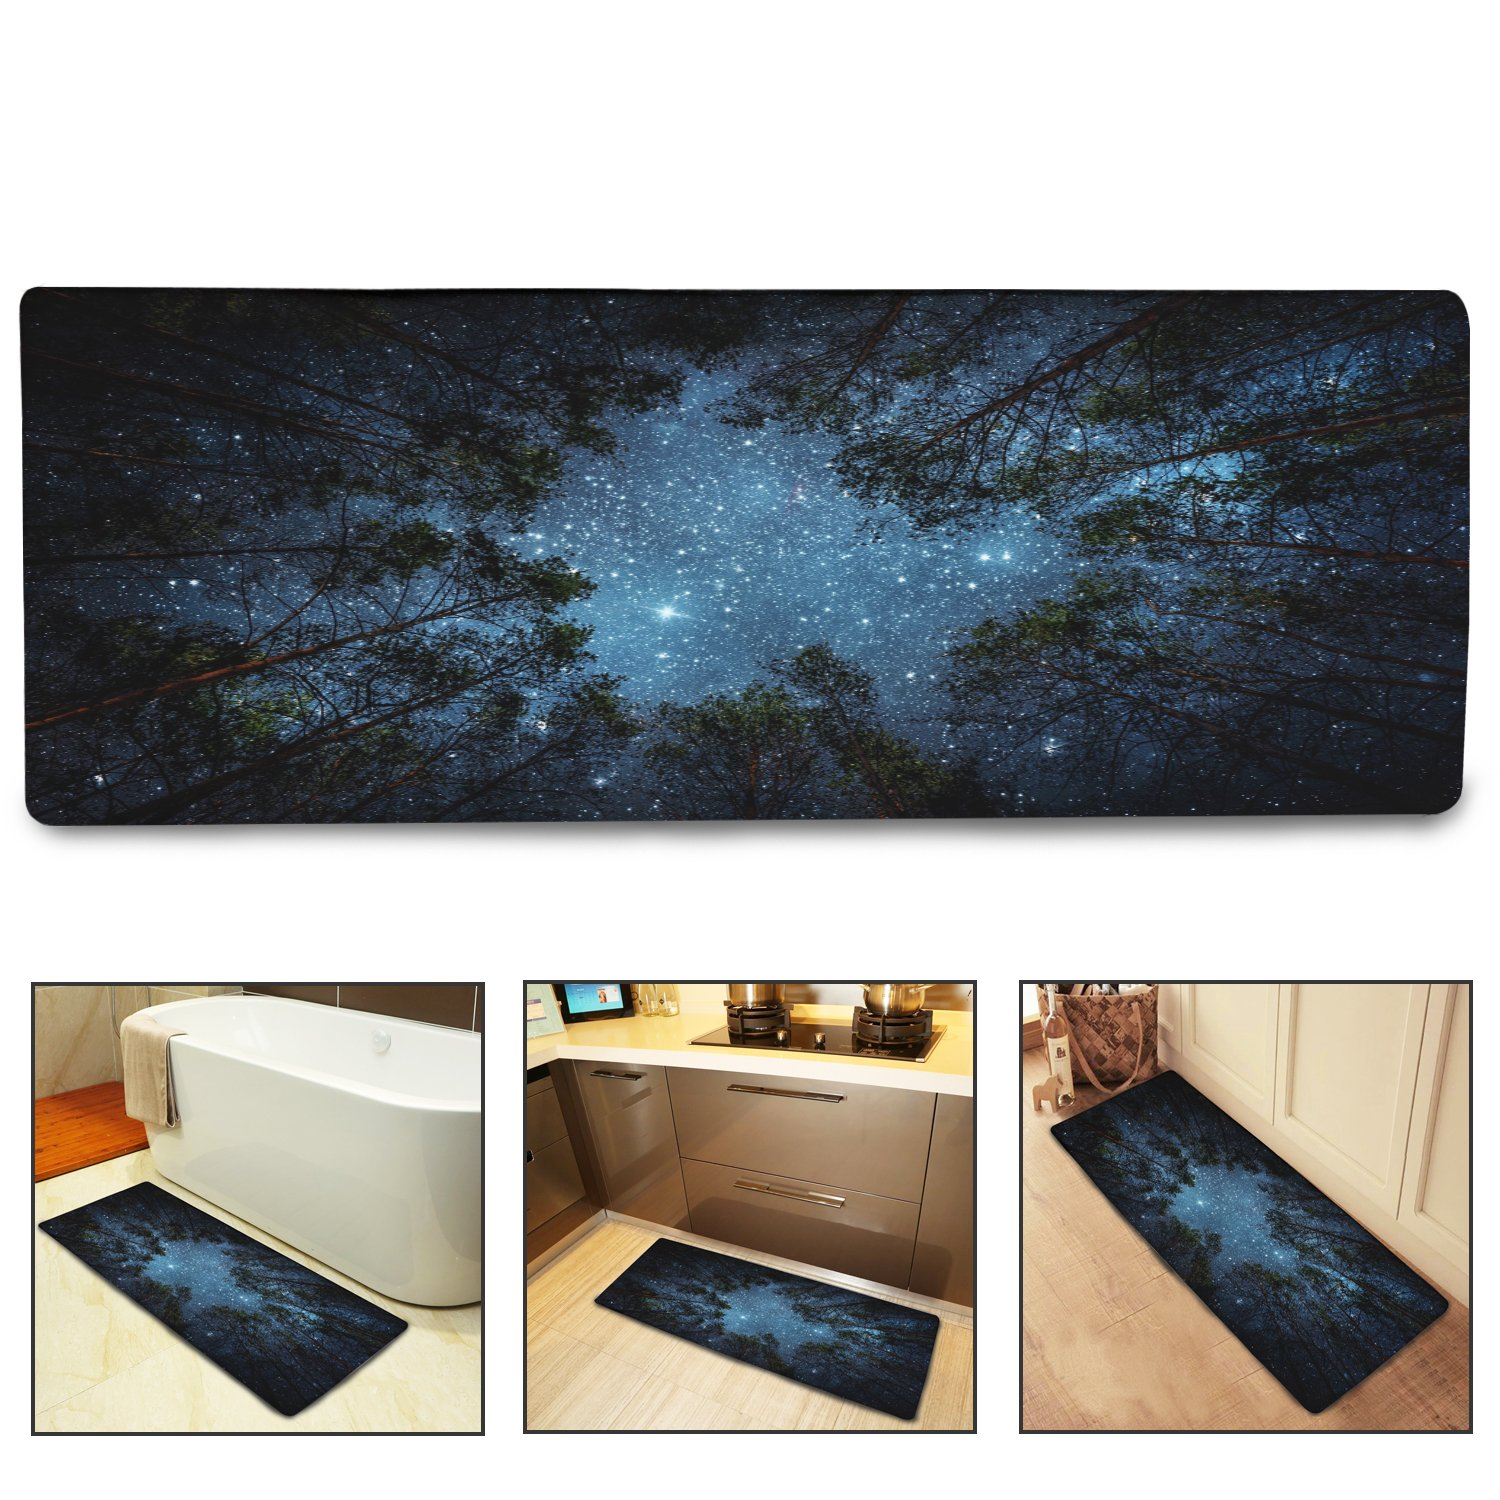 QIYI Bath Mat Rug Super Soft Non-Slip Machine Washable Quickly Drying Antibacterial, for Office Door Mat, Kitchen Dining Living Hallway Bathroom 16x48-The Forest Under The Stars HY 662225141526